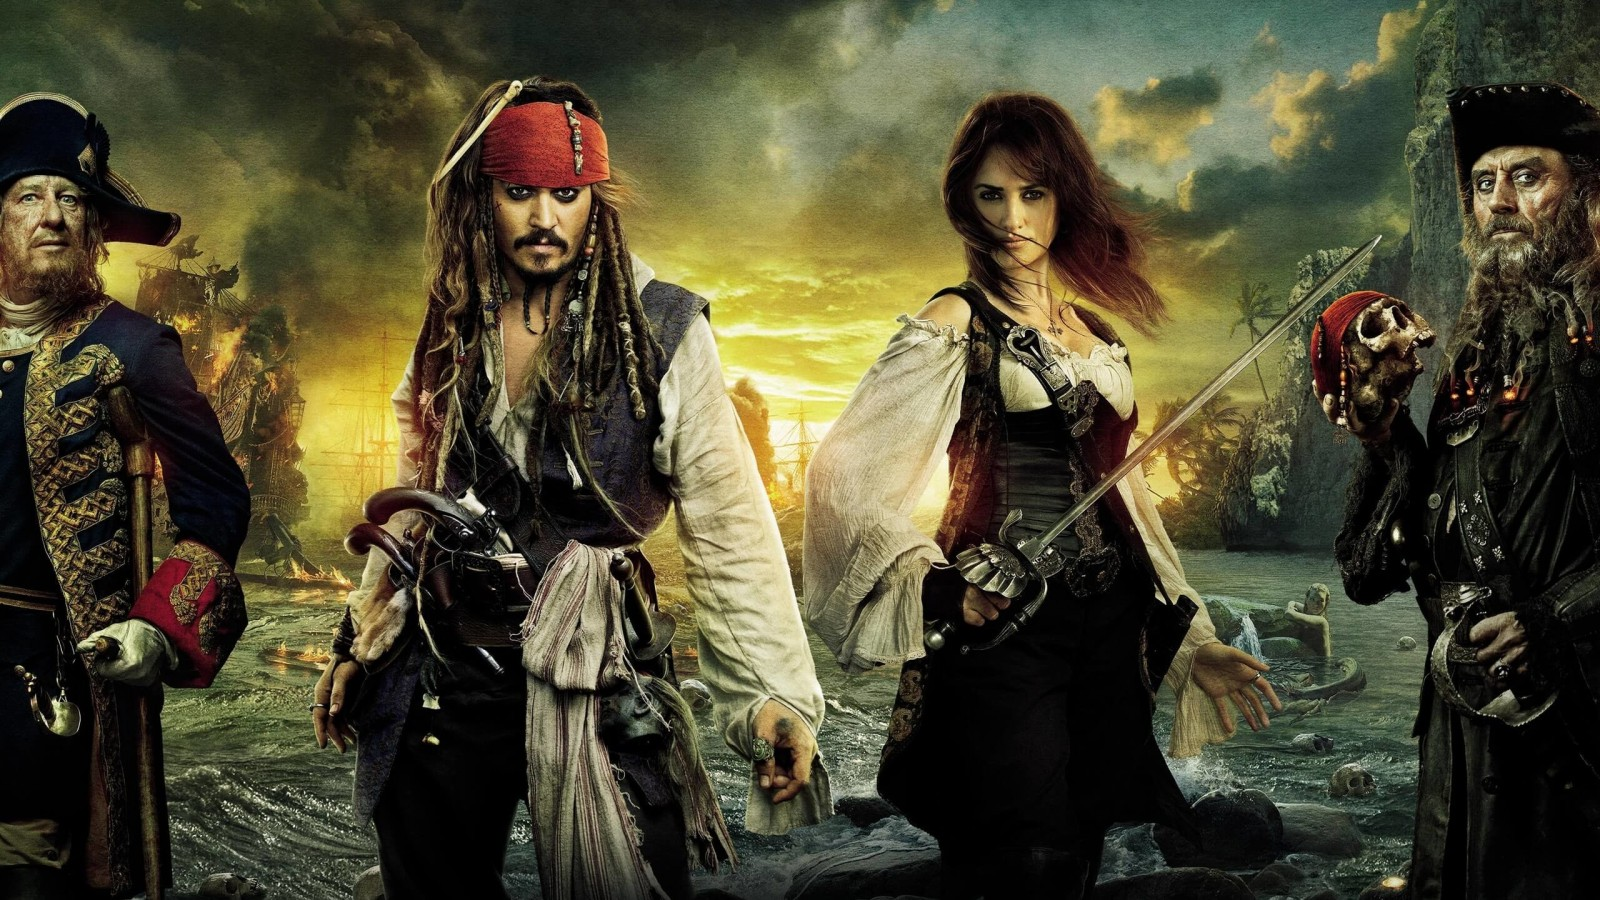 Pirates of the Caribbean: On Stranger Tides Characters Wallpaper for Desktop 1600x900